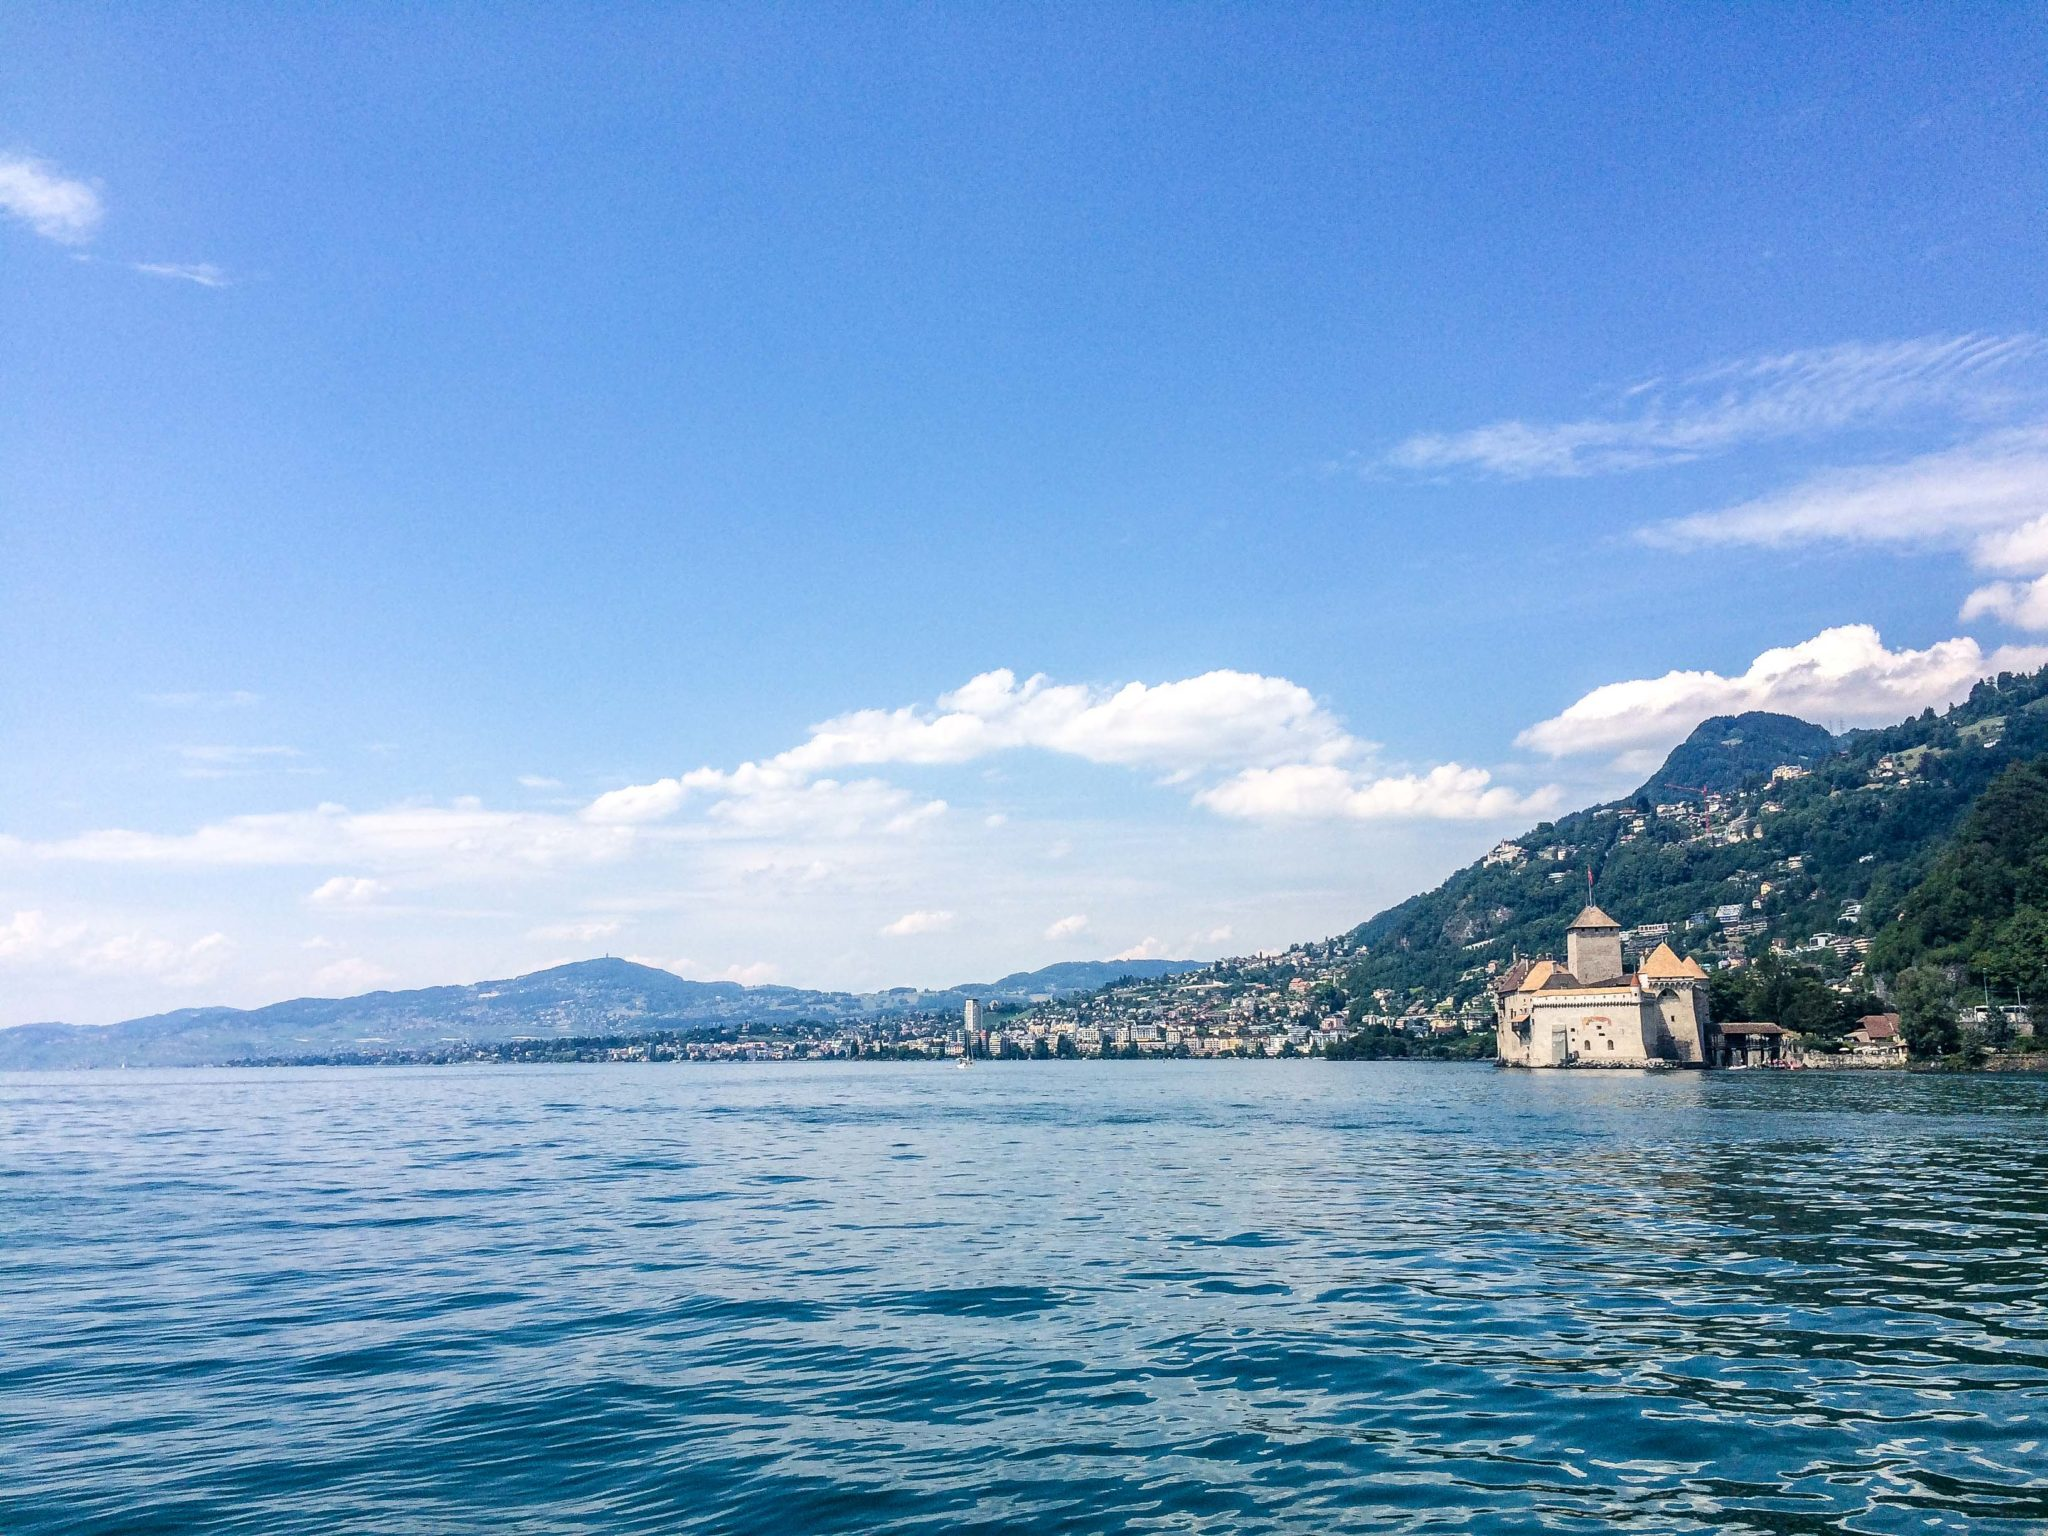 Swiss riviera travel guide Montreux, Vevey, Geneva highlights, top places and tips by Bulgarian blogger Michaella from Quite a Looker